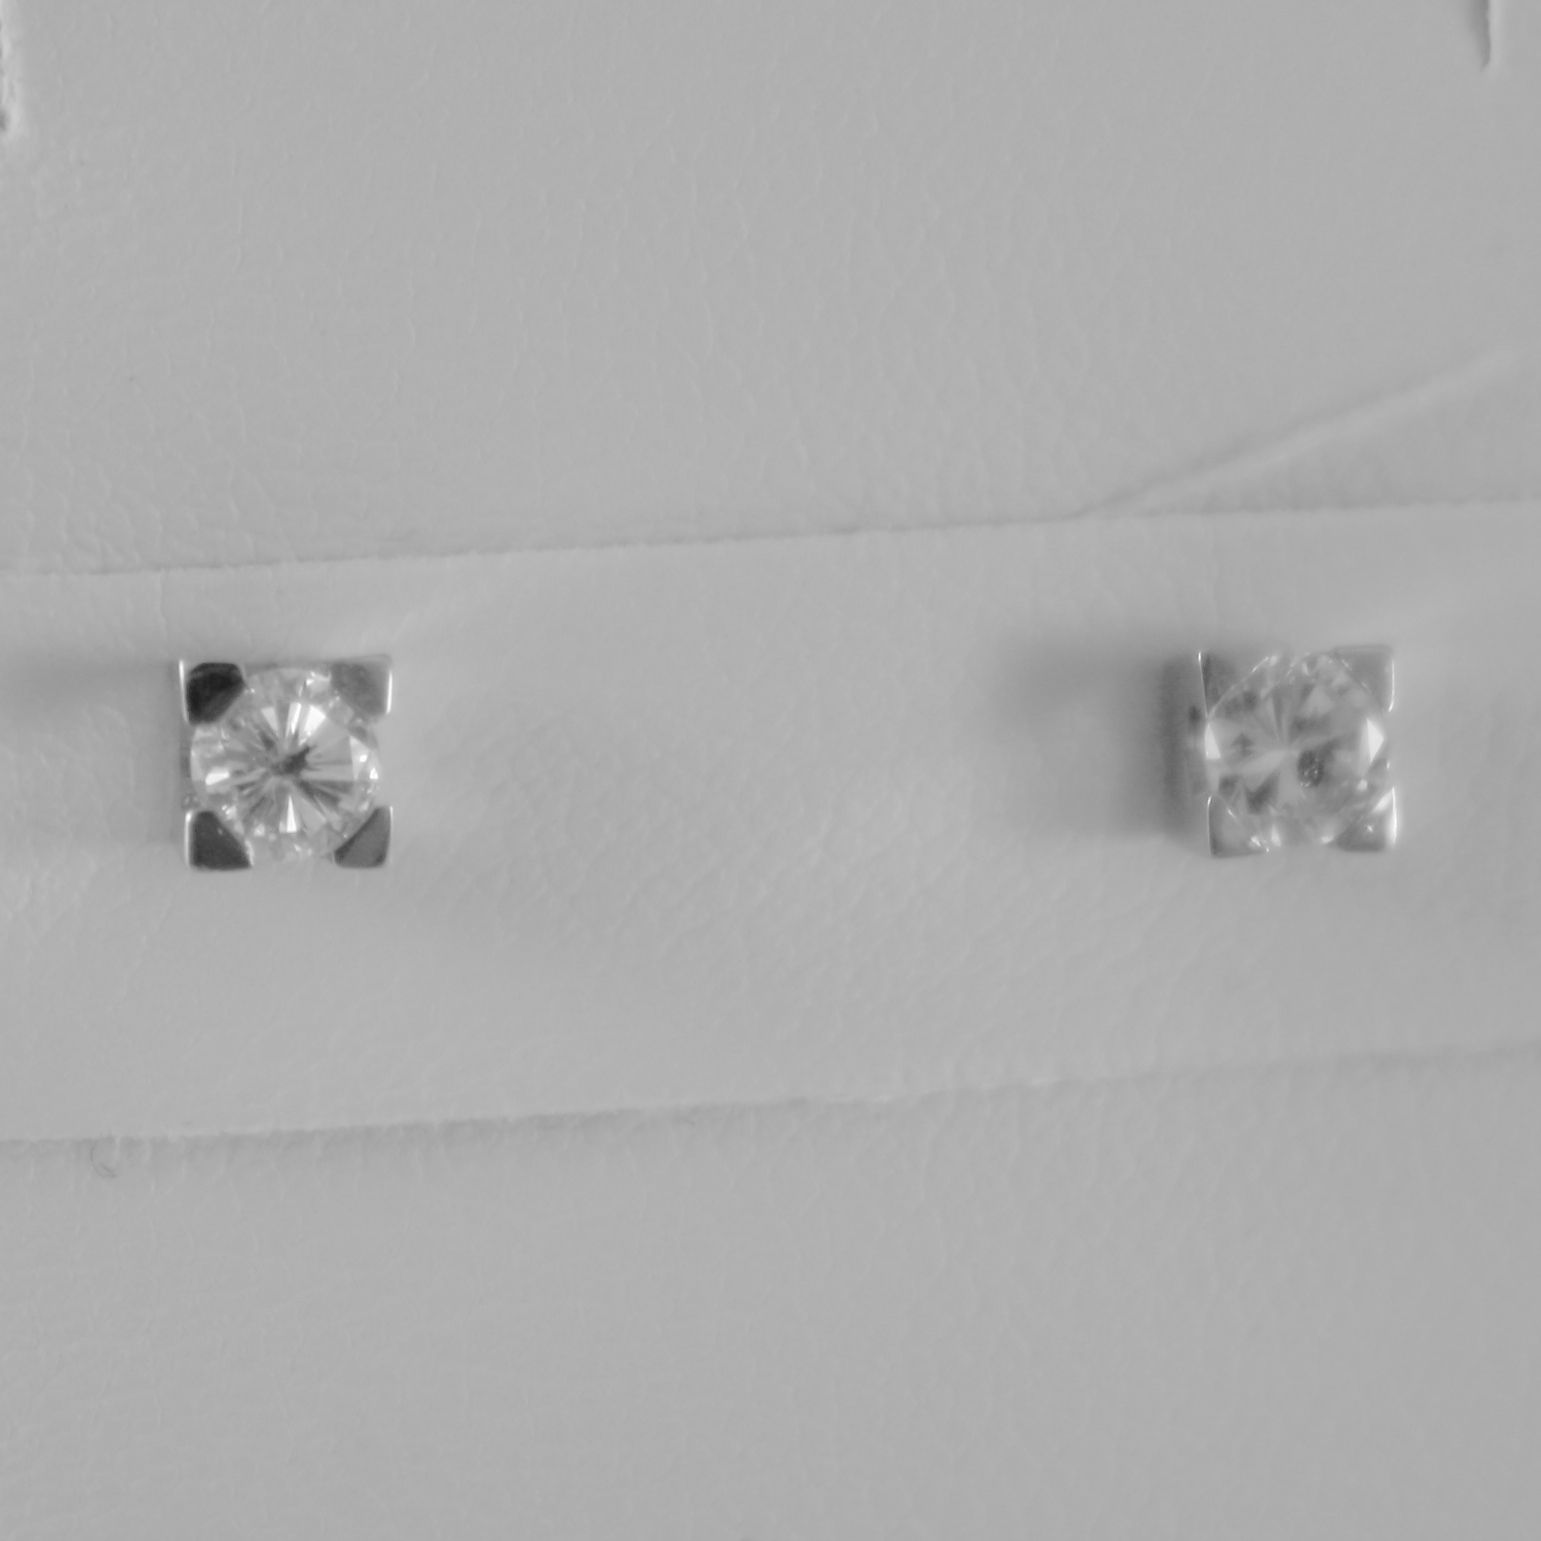 18K WHITE GOLD SQUARE 3.5 mm EARRINGS DIAMOND DIAMONDS 0.32 CT, MADE IN ITALY